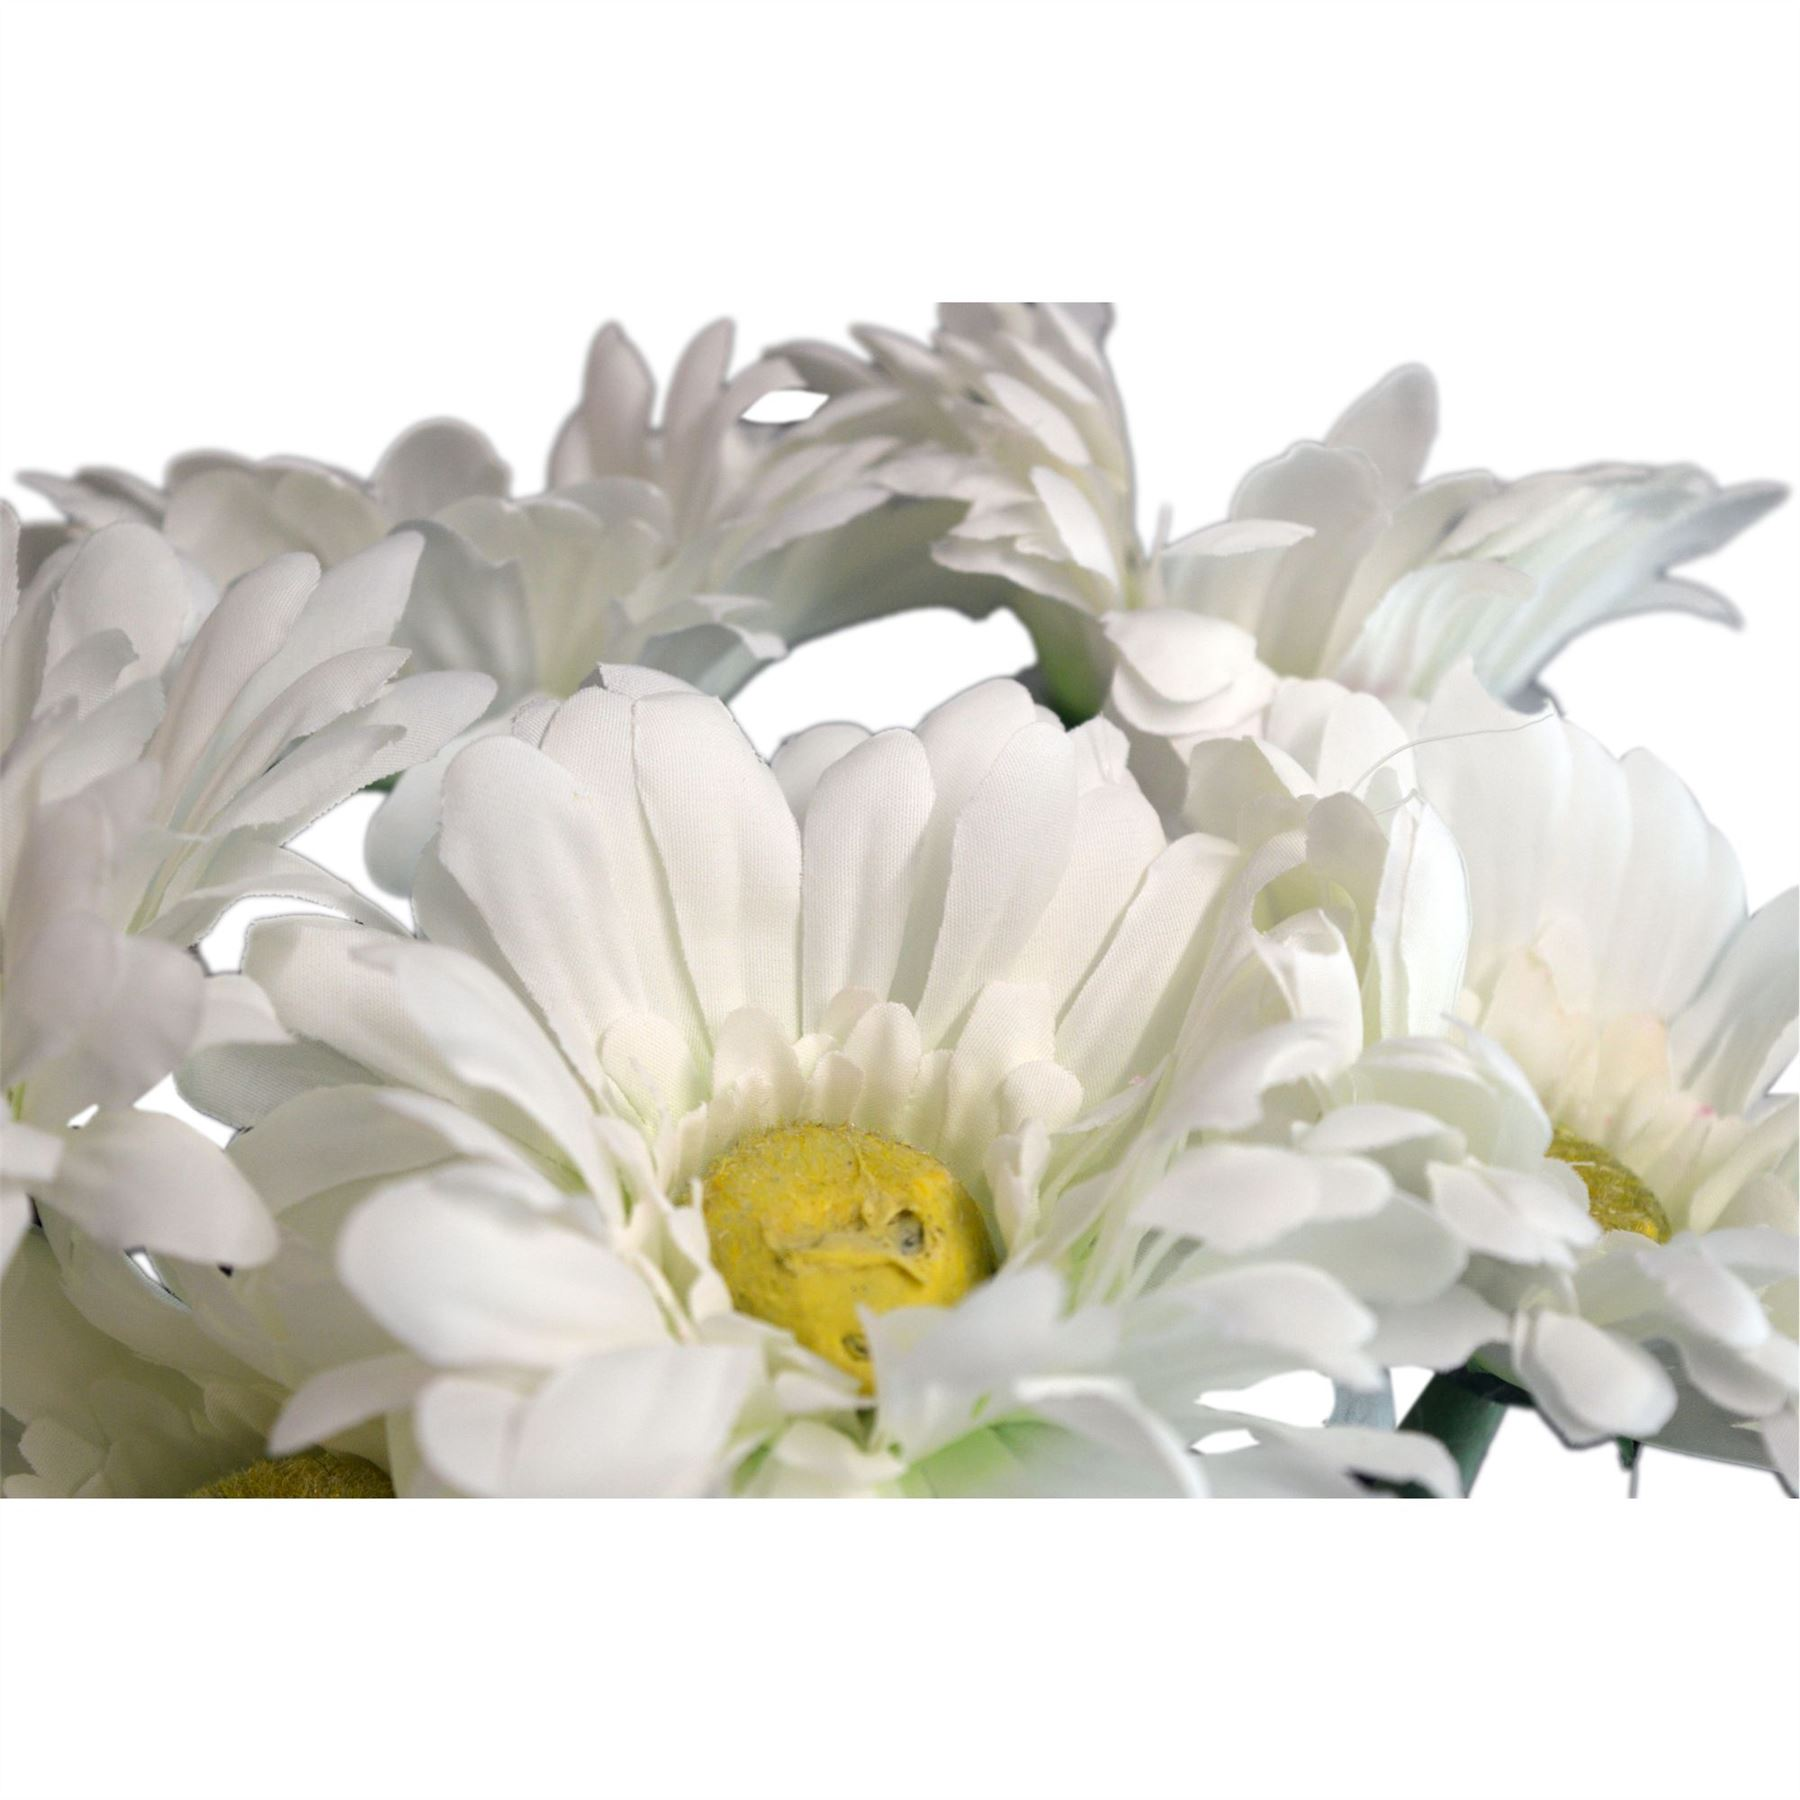 Artificial long stem gerbera flower plant in white 54cm x6 stems artificial long stem gerbera flower plant in white 54cm x6 stems mightylinksfo